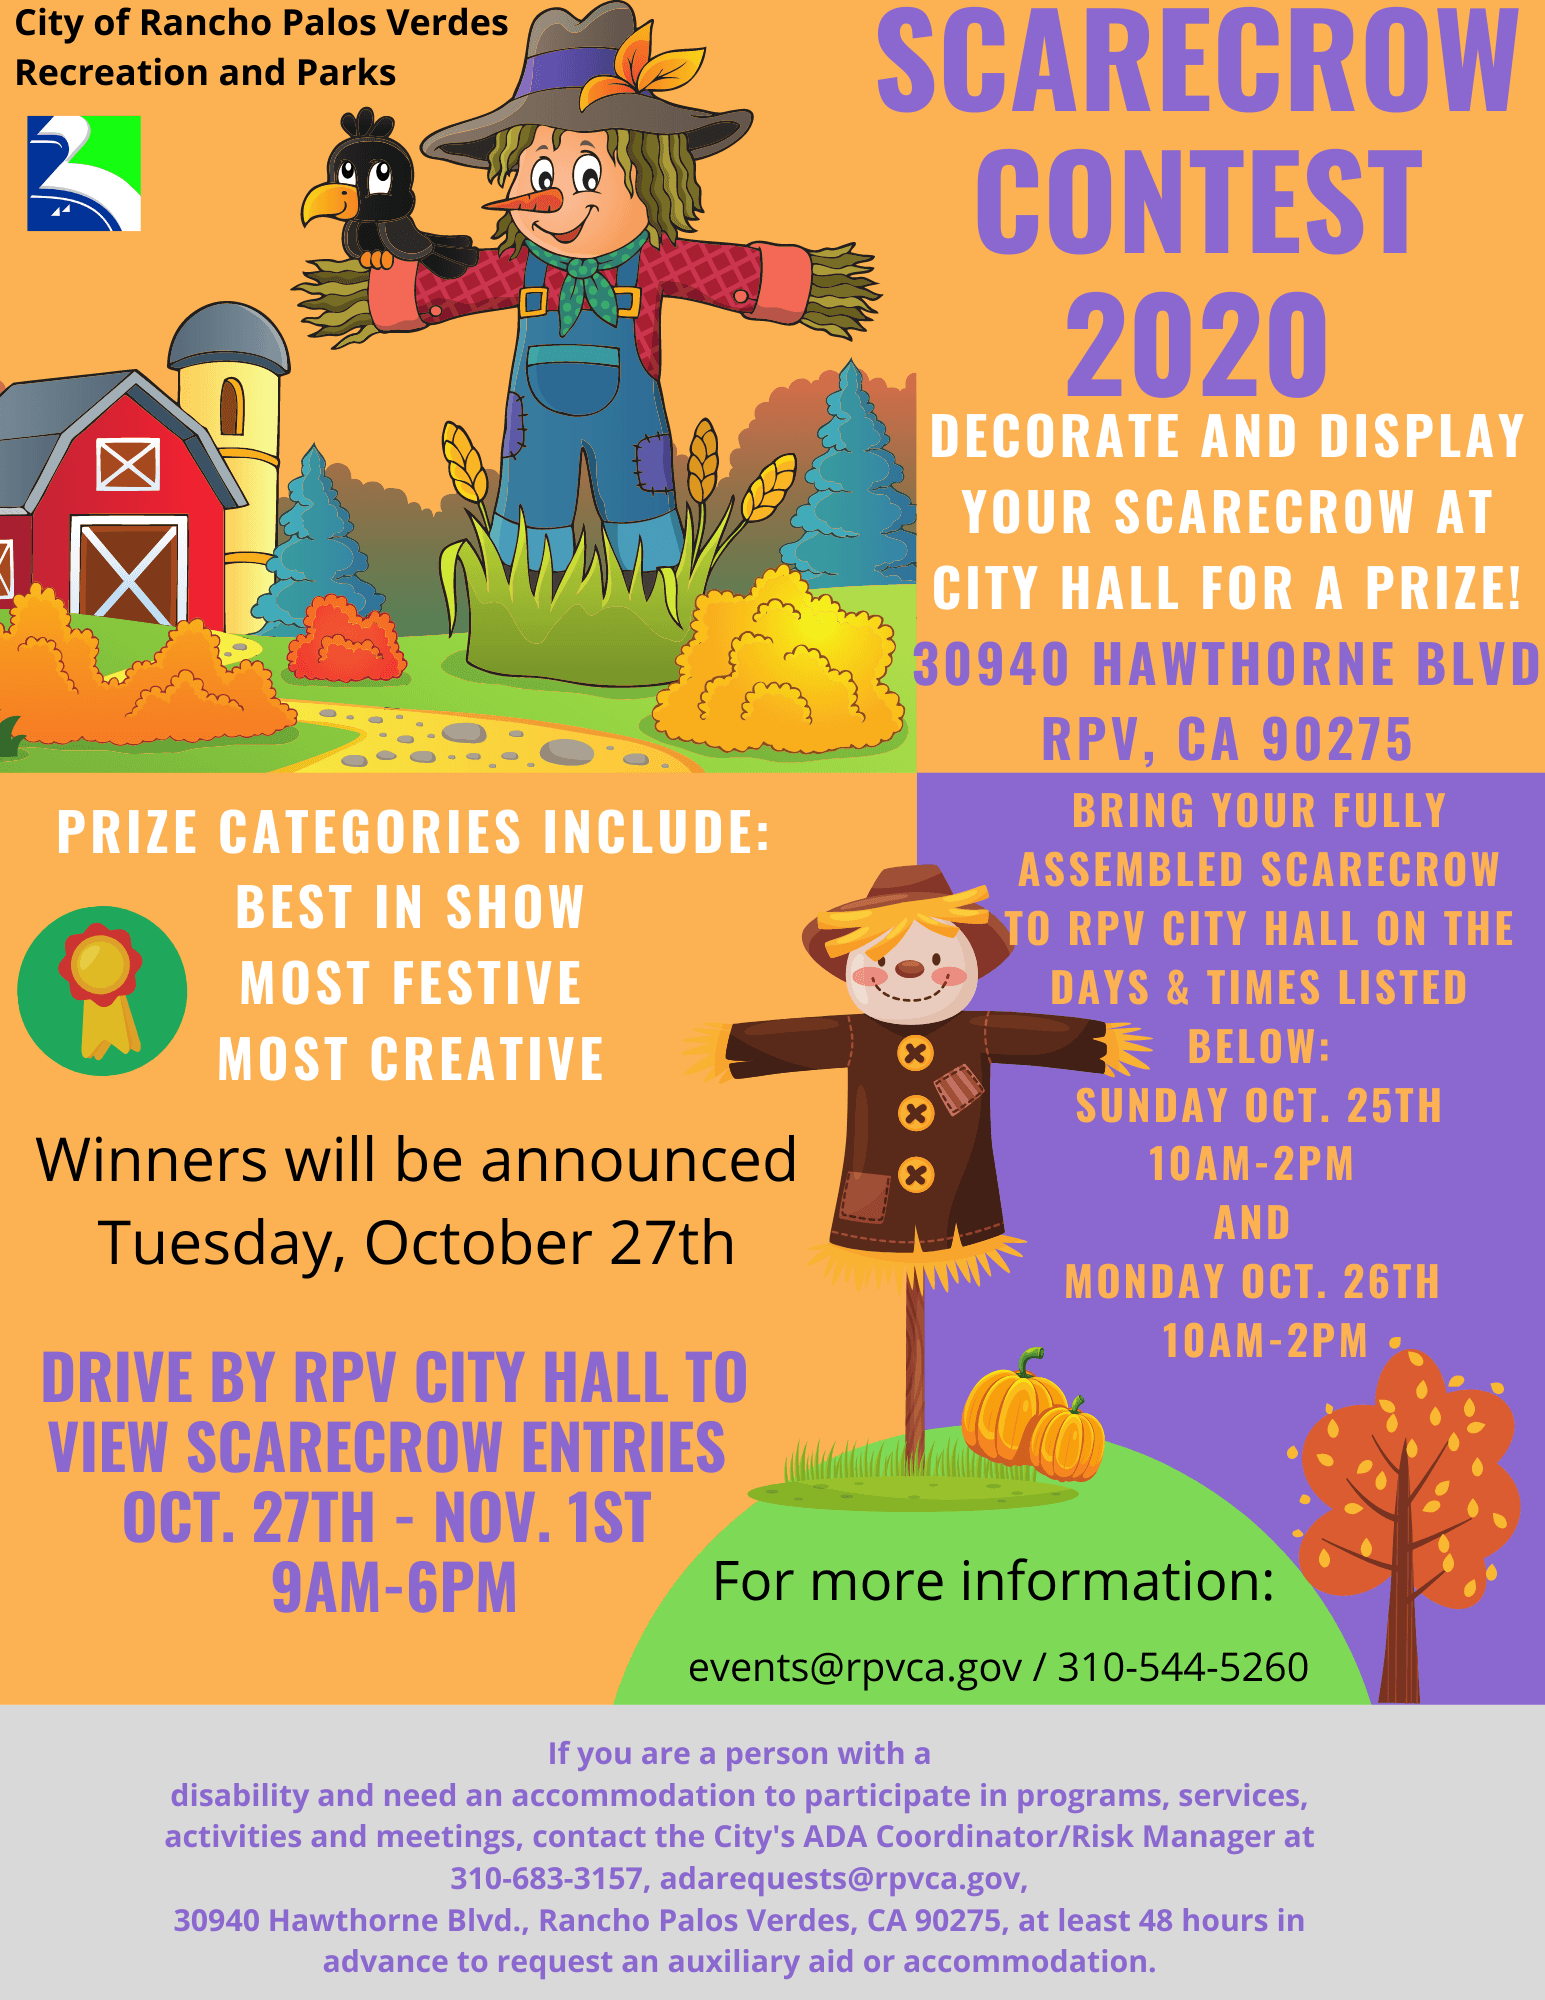 Scarecrow Contest Flyer